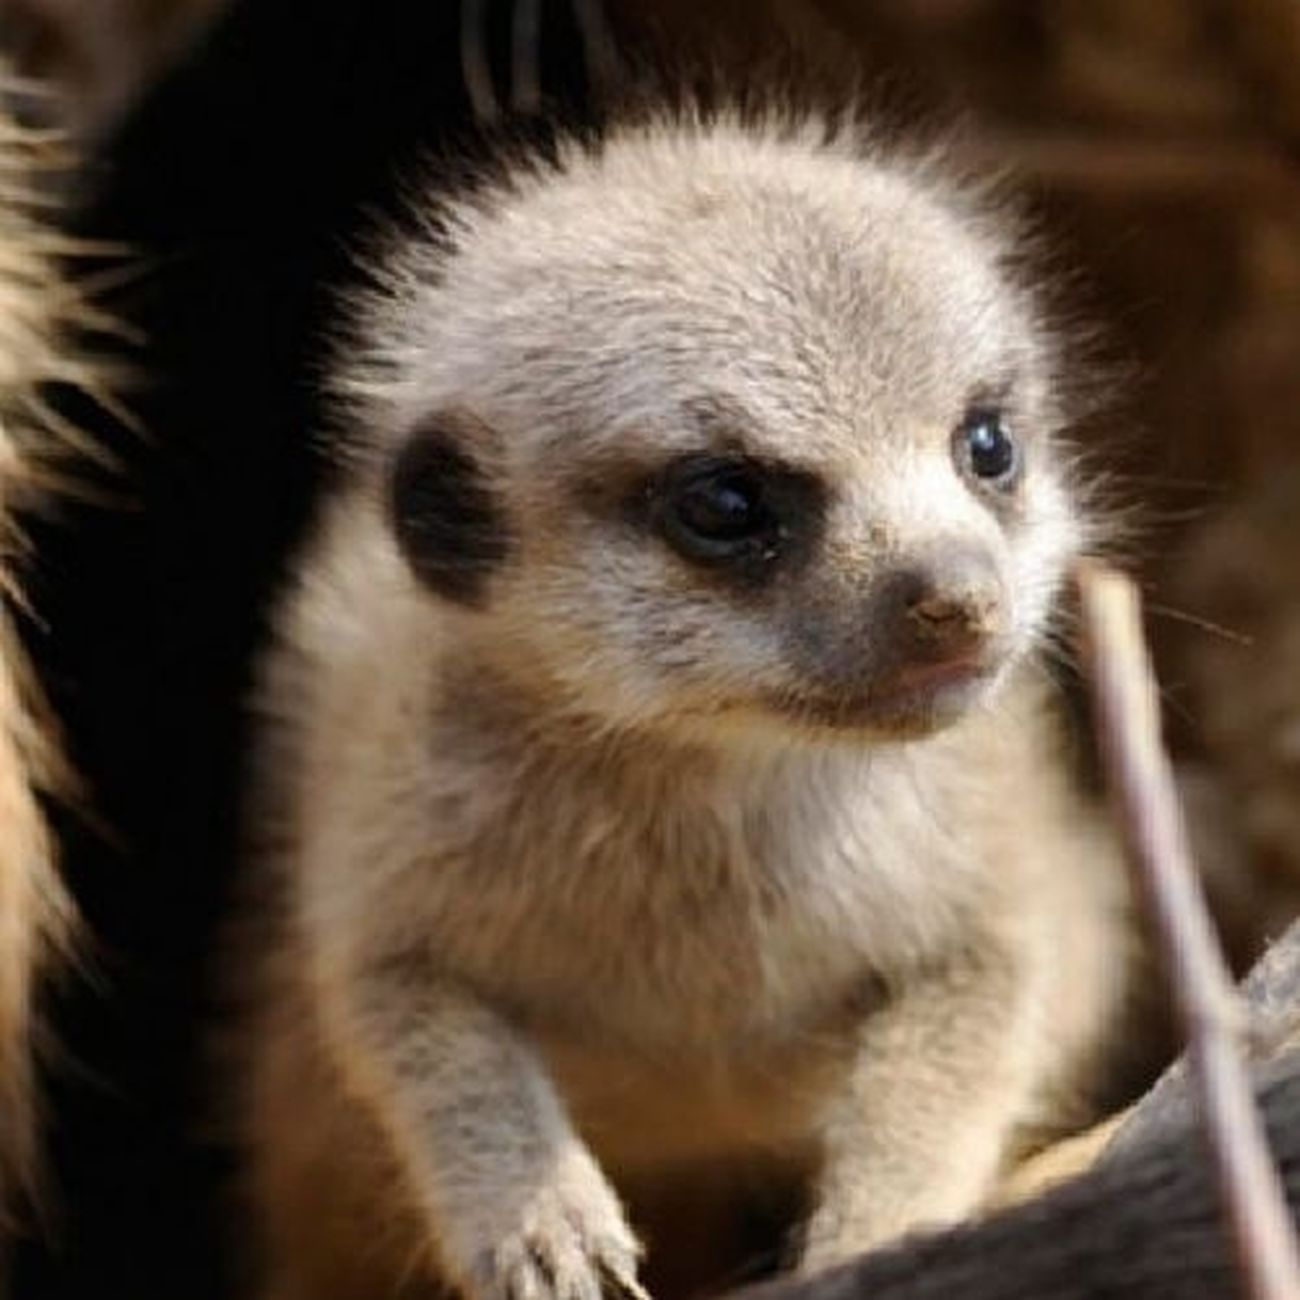 Meerkat Cute Adorable Awwwwww!!!!!!!!